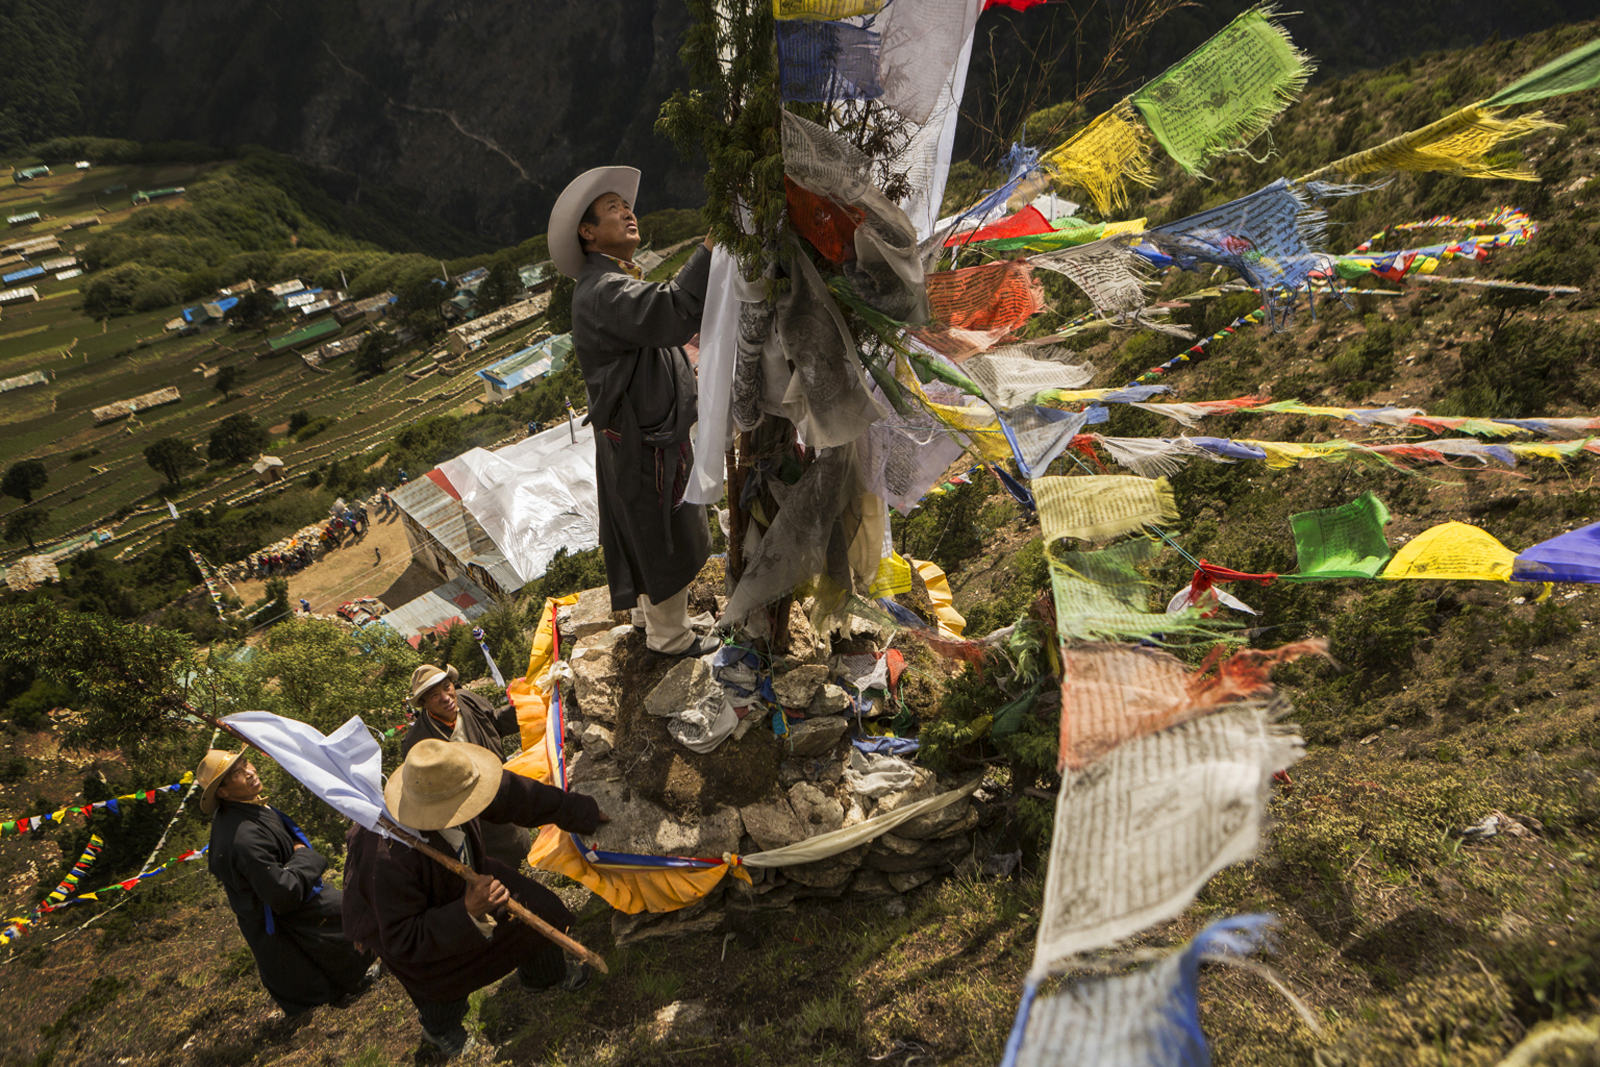 Organizers (eldest males from the 6 families) of the Dumji Festival do the {quote}opening ceremony{quote} in which they take prayer flags (white) and chang to a high puja altar for the God of the Khumbu (Kumbuyula).   The flags and juniper branch are tied to the altar.